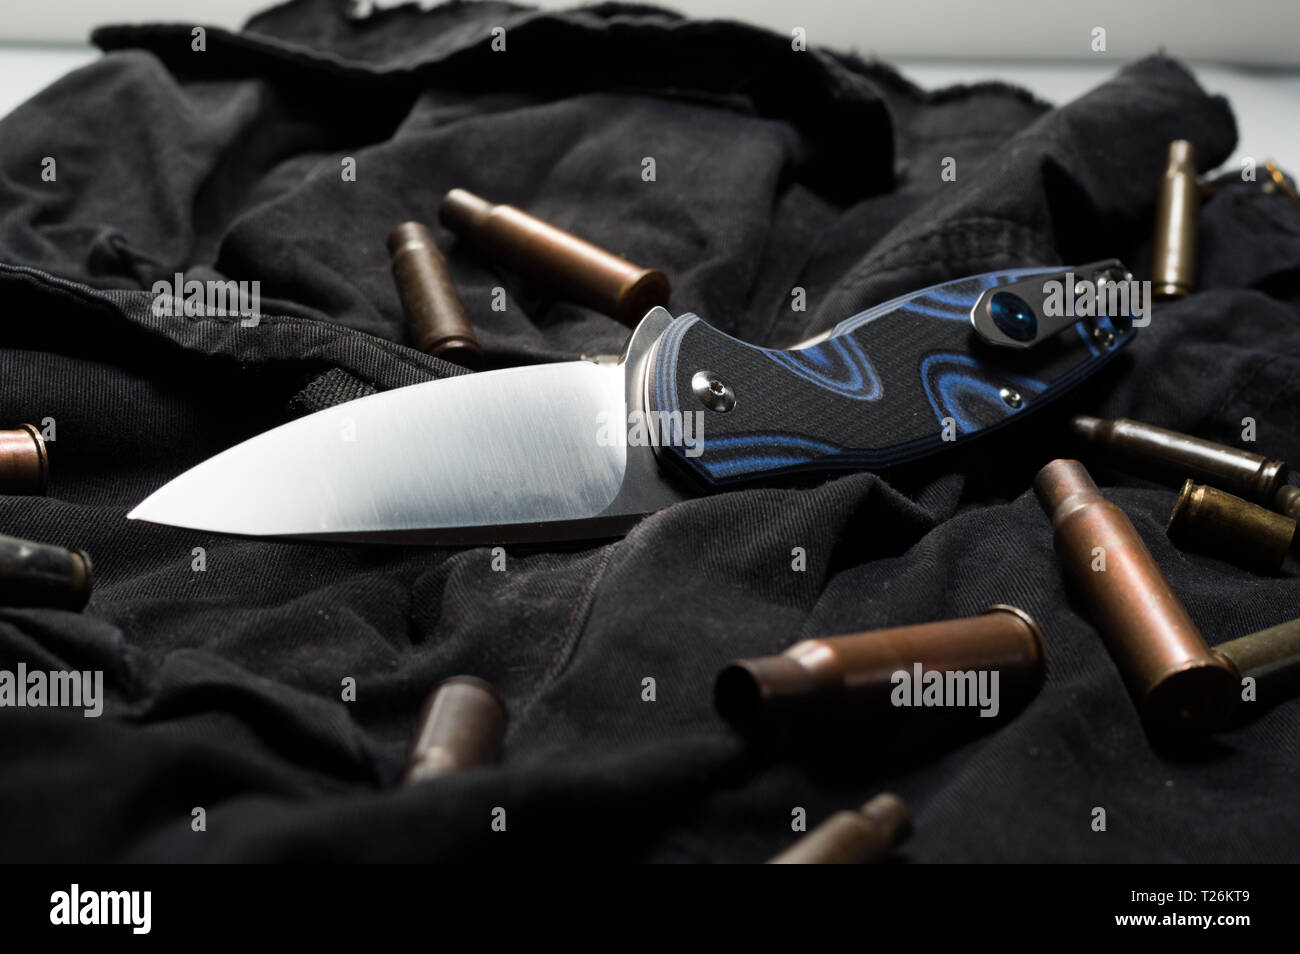 Knife ammunition on a black background. Military sleeves and knife. Front view. - Stock Image